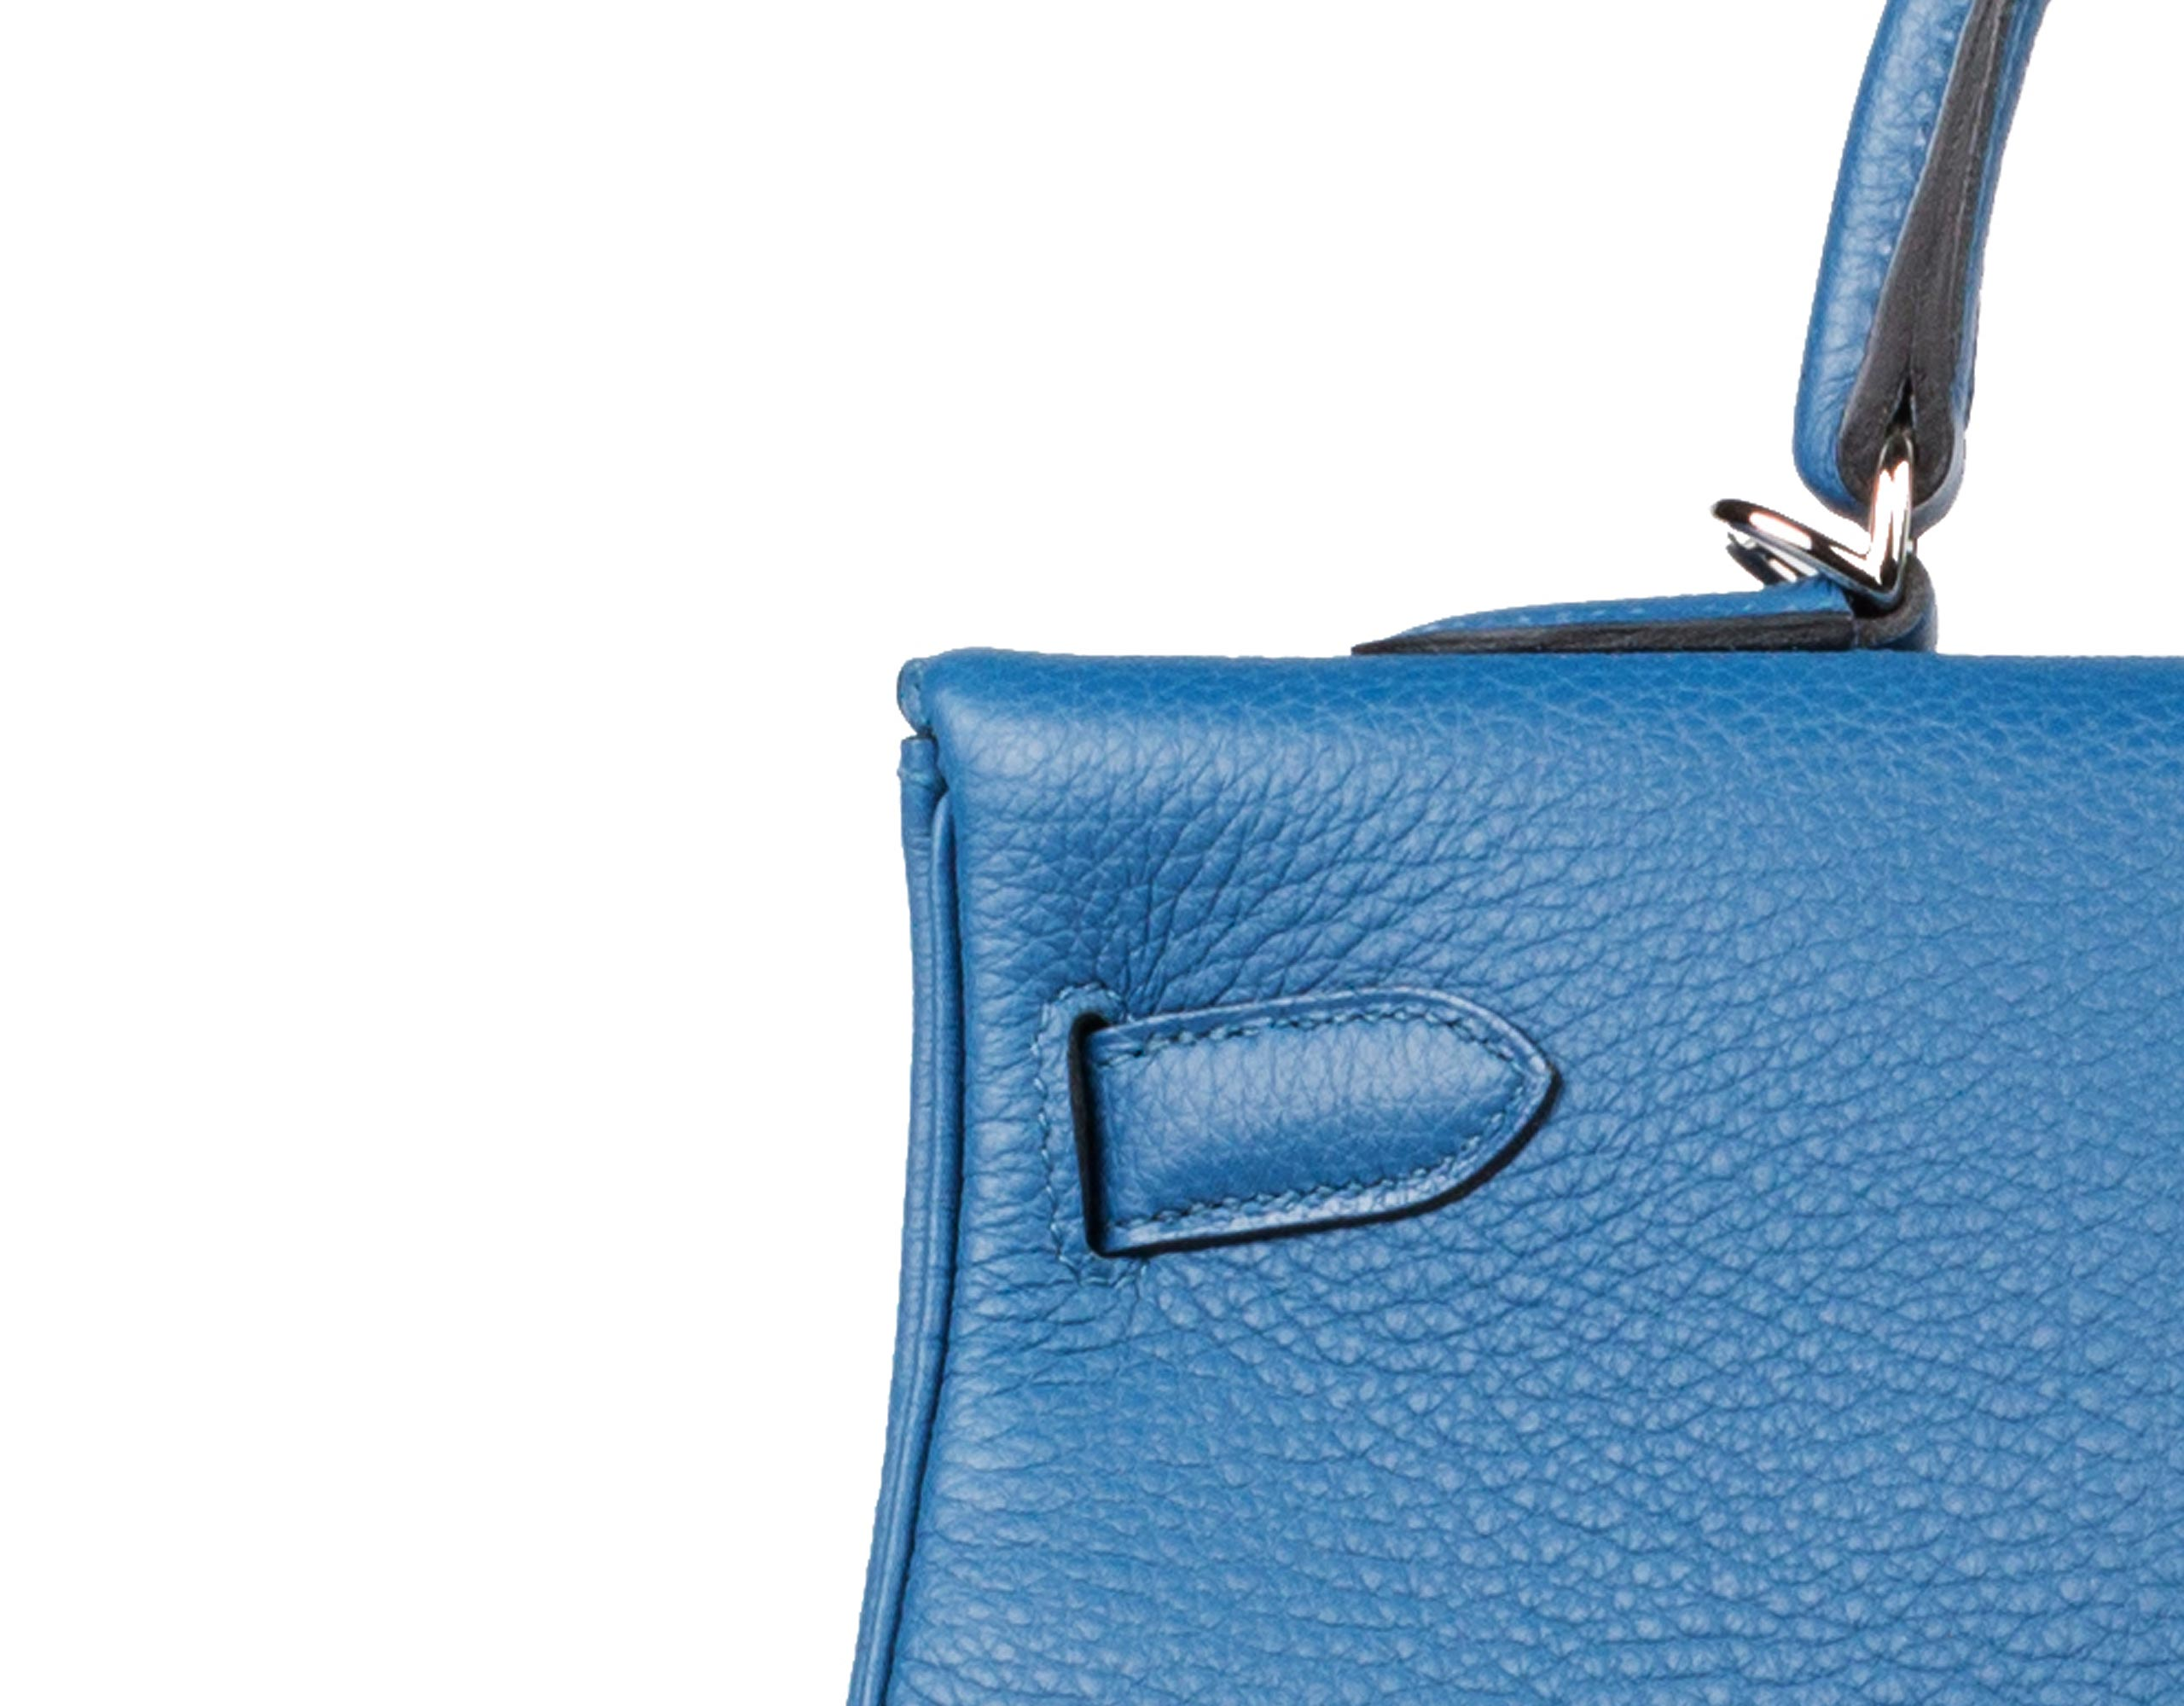 Hermes Bag Kelly Blue Galice Clemence 35cm K75 Stitching